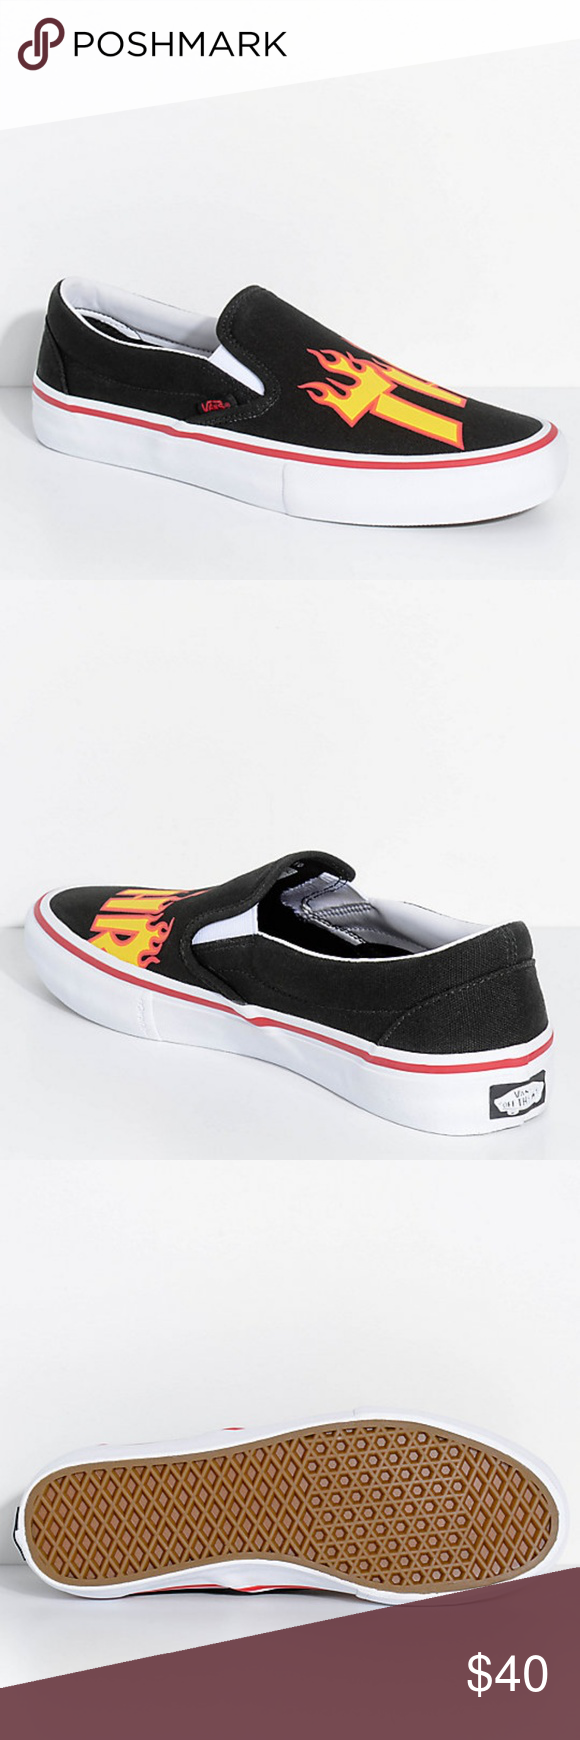 Vans x Thrasher Slip On Pro Black Skate Shoes *New no box